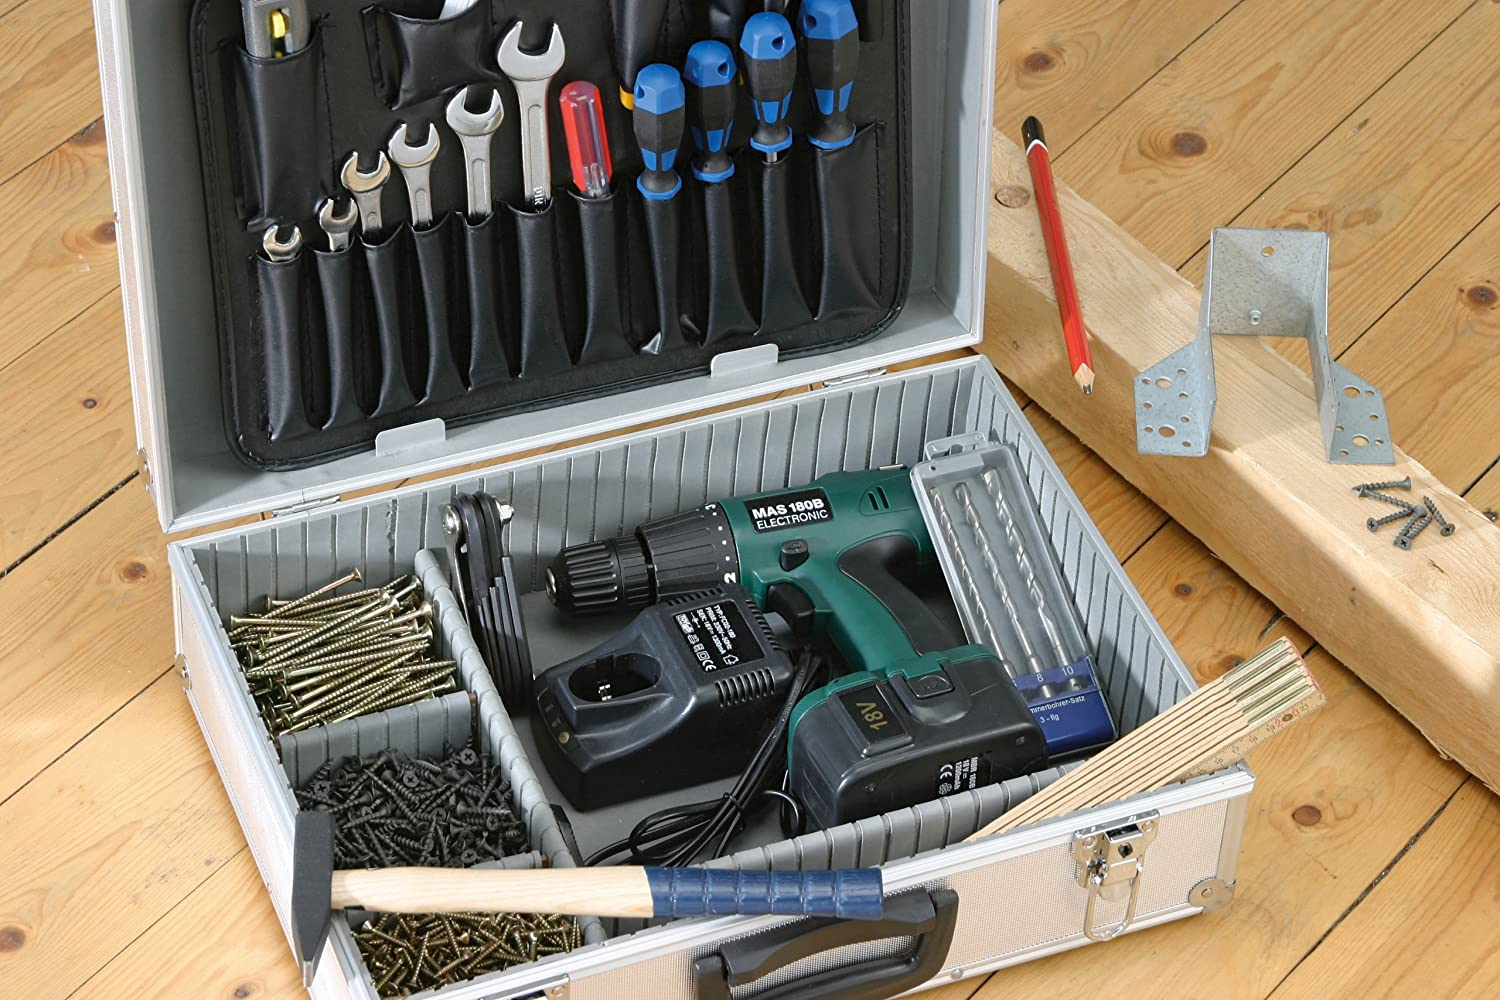 9095000 460 x 330 x 150 mm Meister Valise /à outils vide